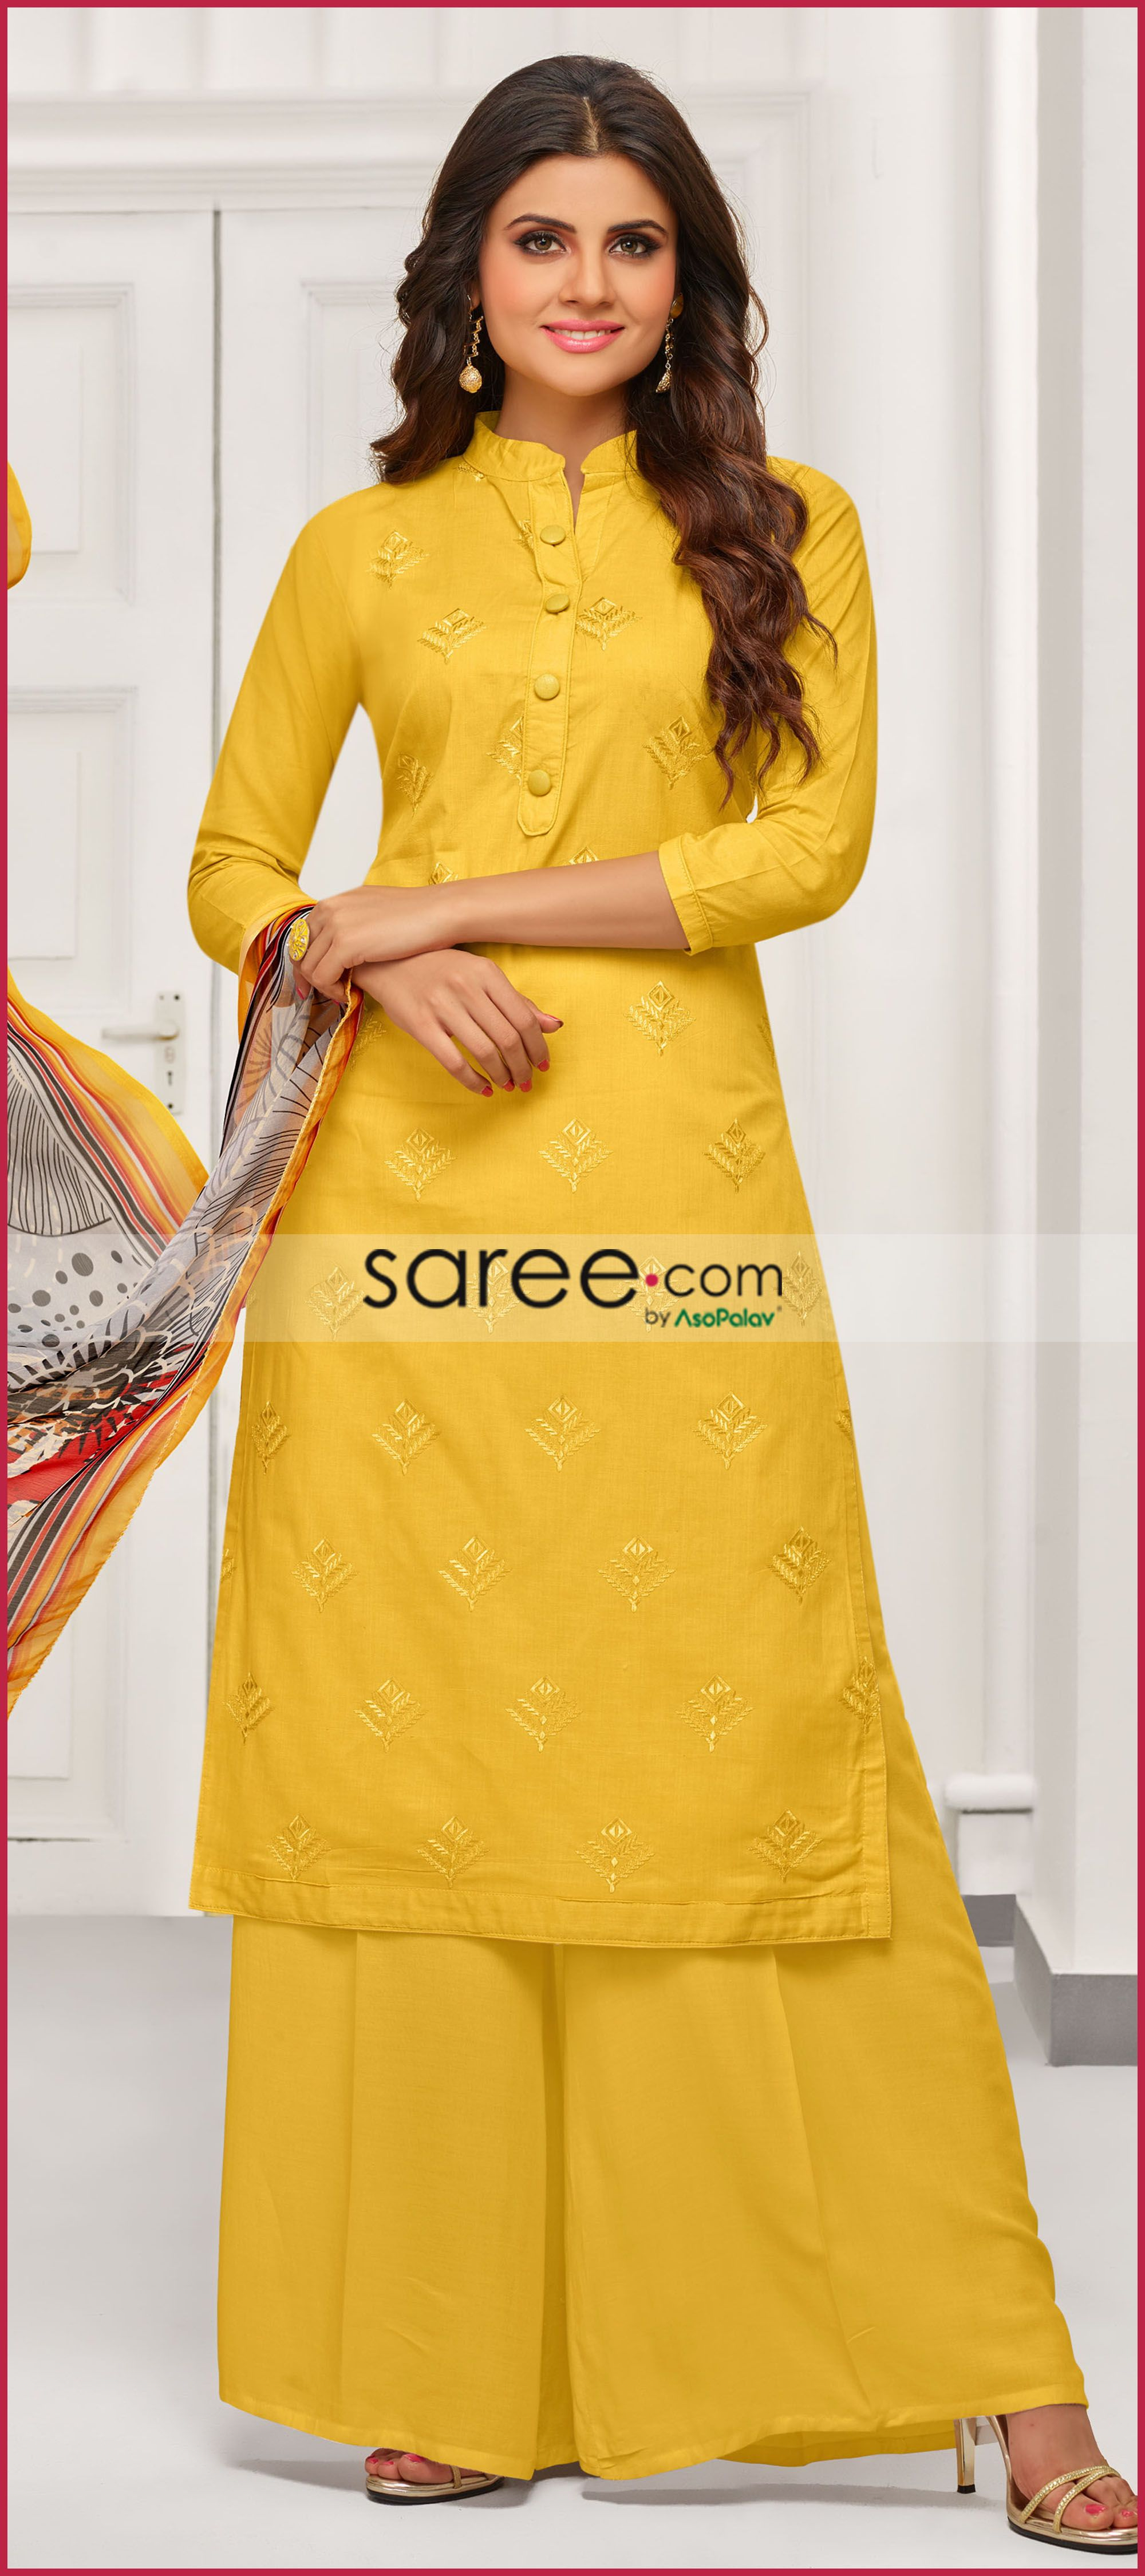 43bd410f08 Yellow Cotton Palazzo Suit With Embroidery | my harem itk | Palazzo ...